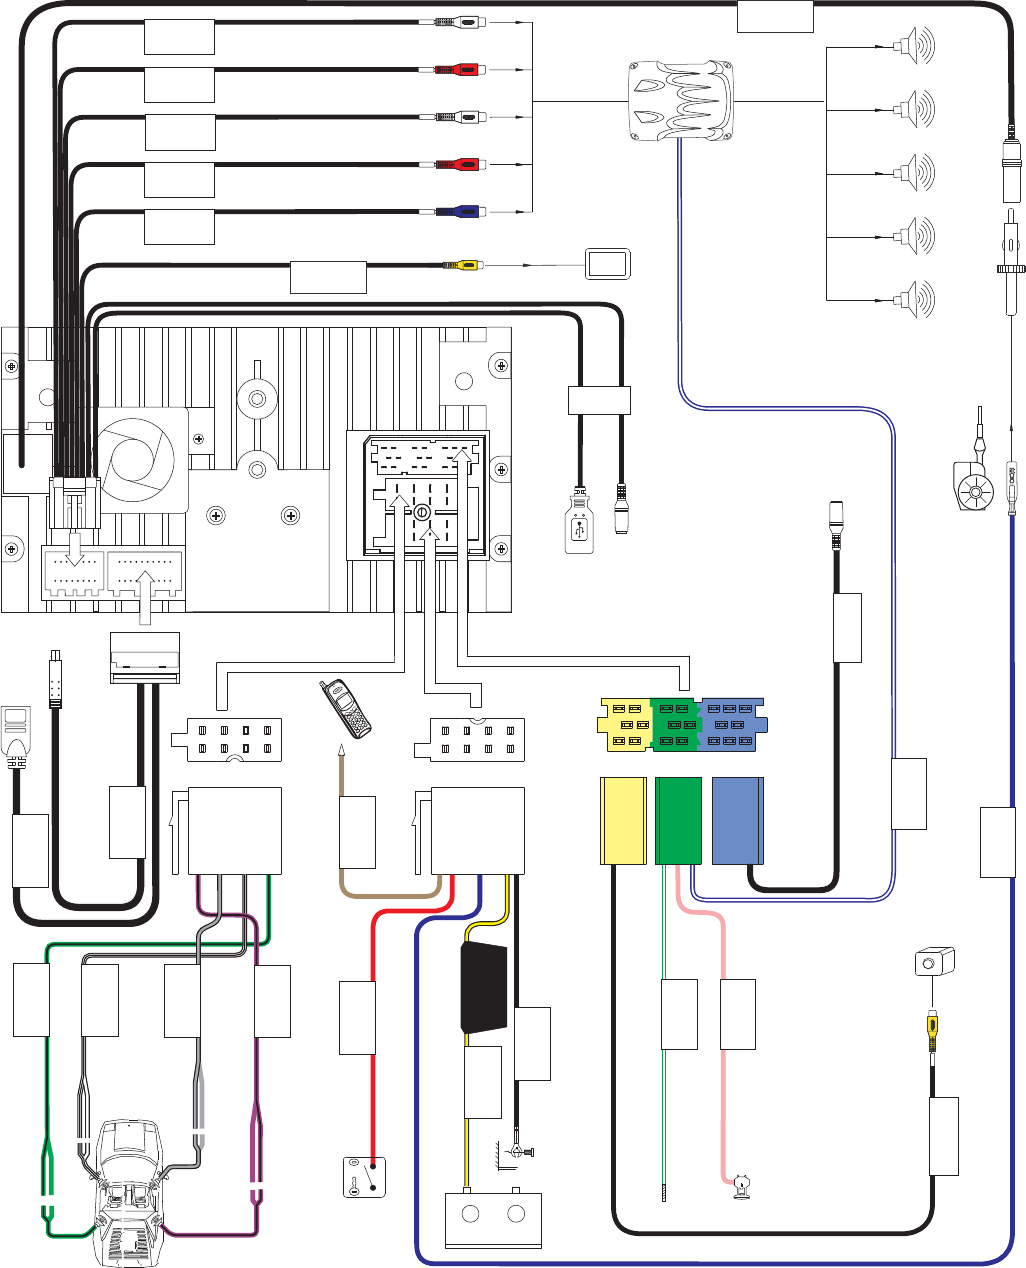 34fbcac4 7bef 4eb8 b34c 690a937048d0 bg4 jensen uv9 wiring diagram audio control wiring diagram \u2022 wiring  at bakdesigns.co